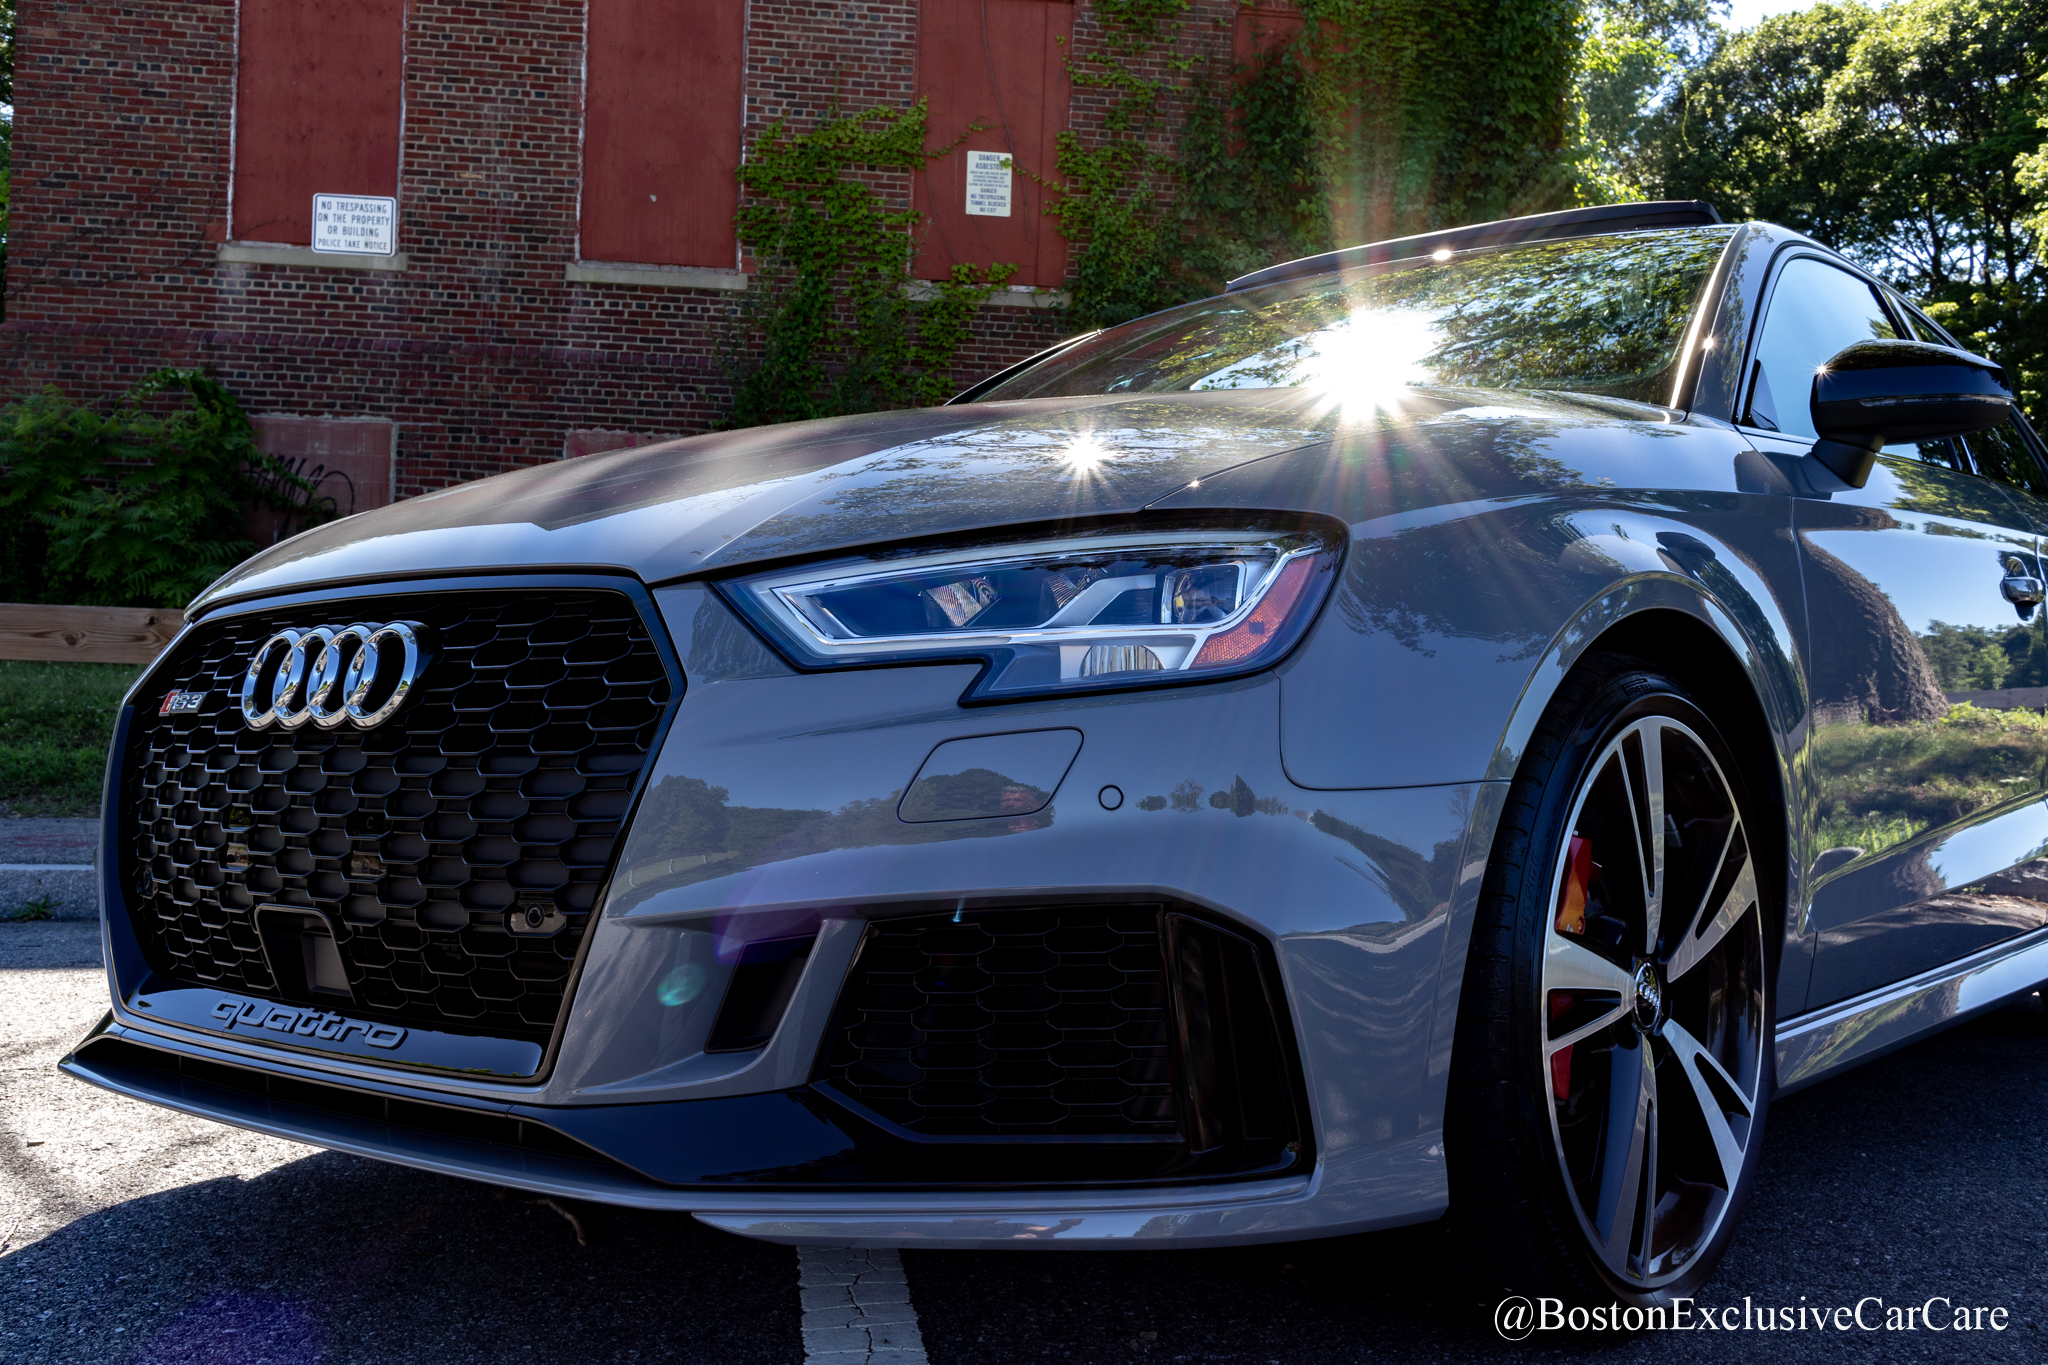 Audi RS3 - Xpel Ultimate full car wrap with coating. -